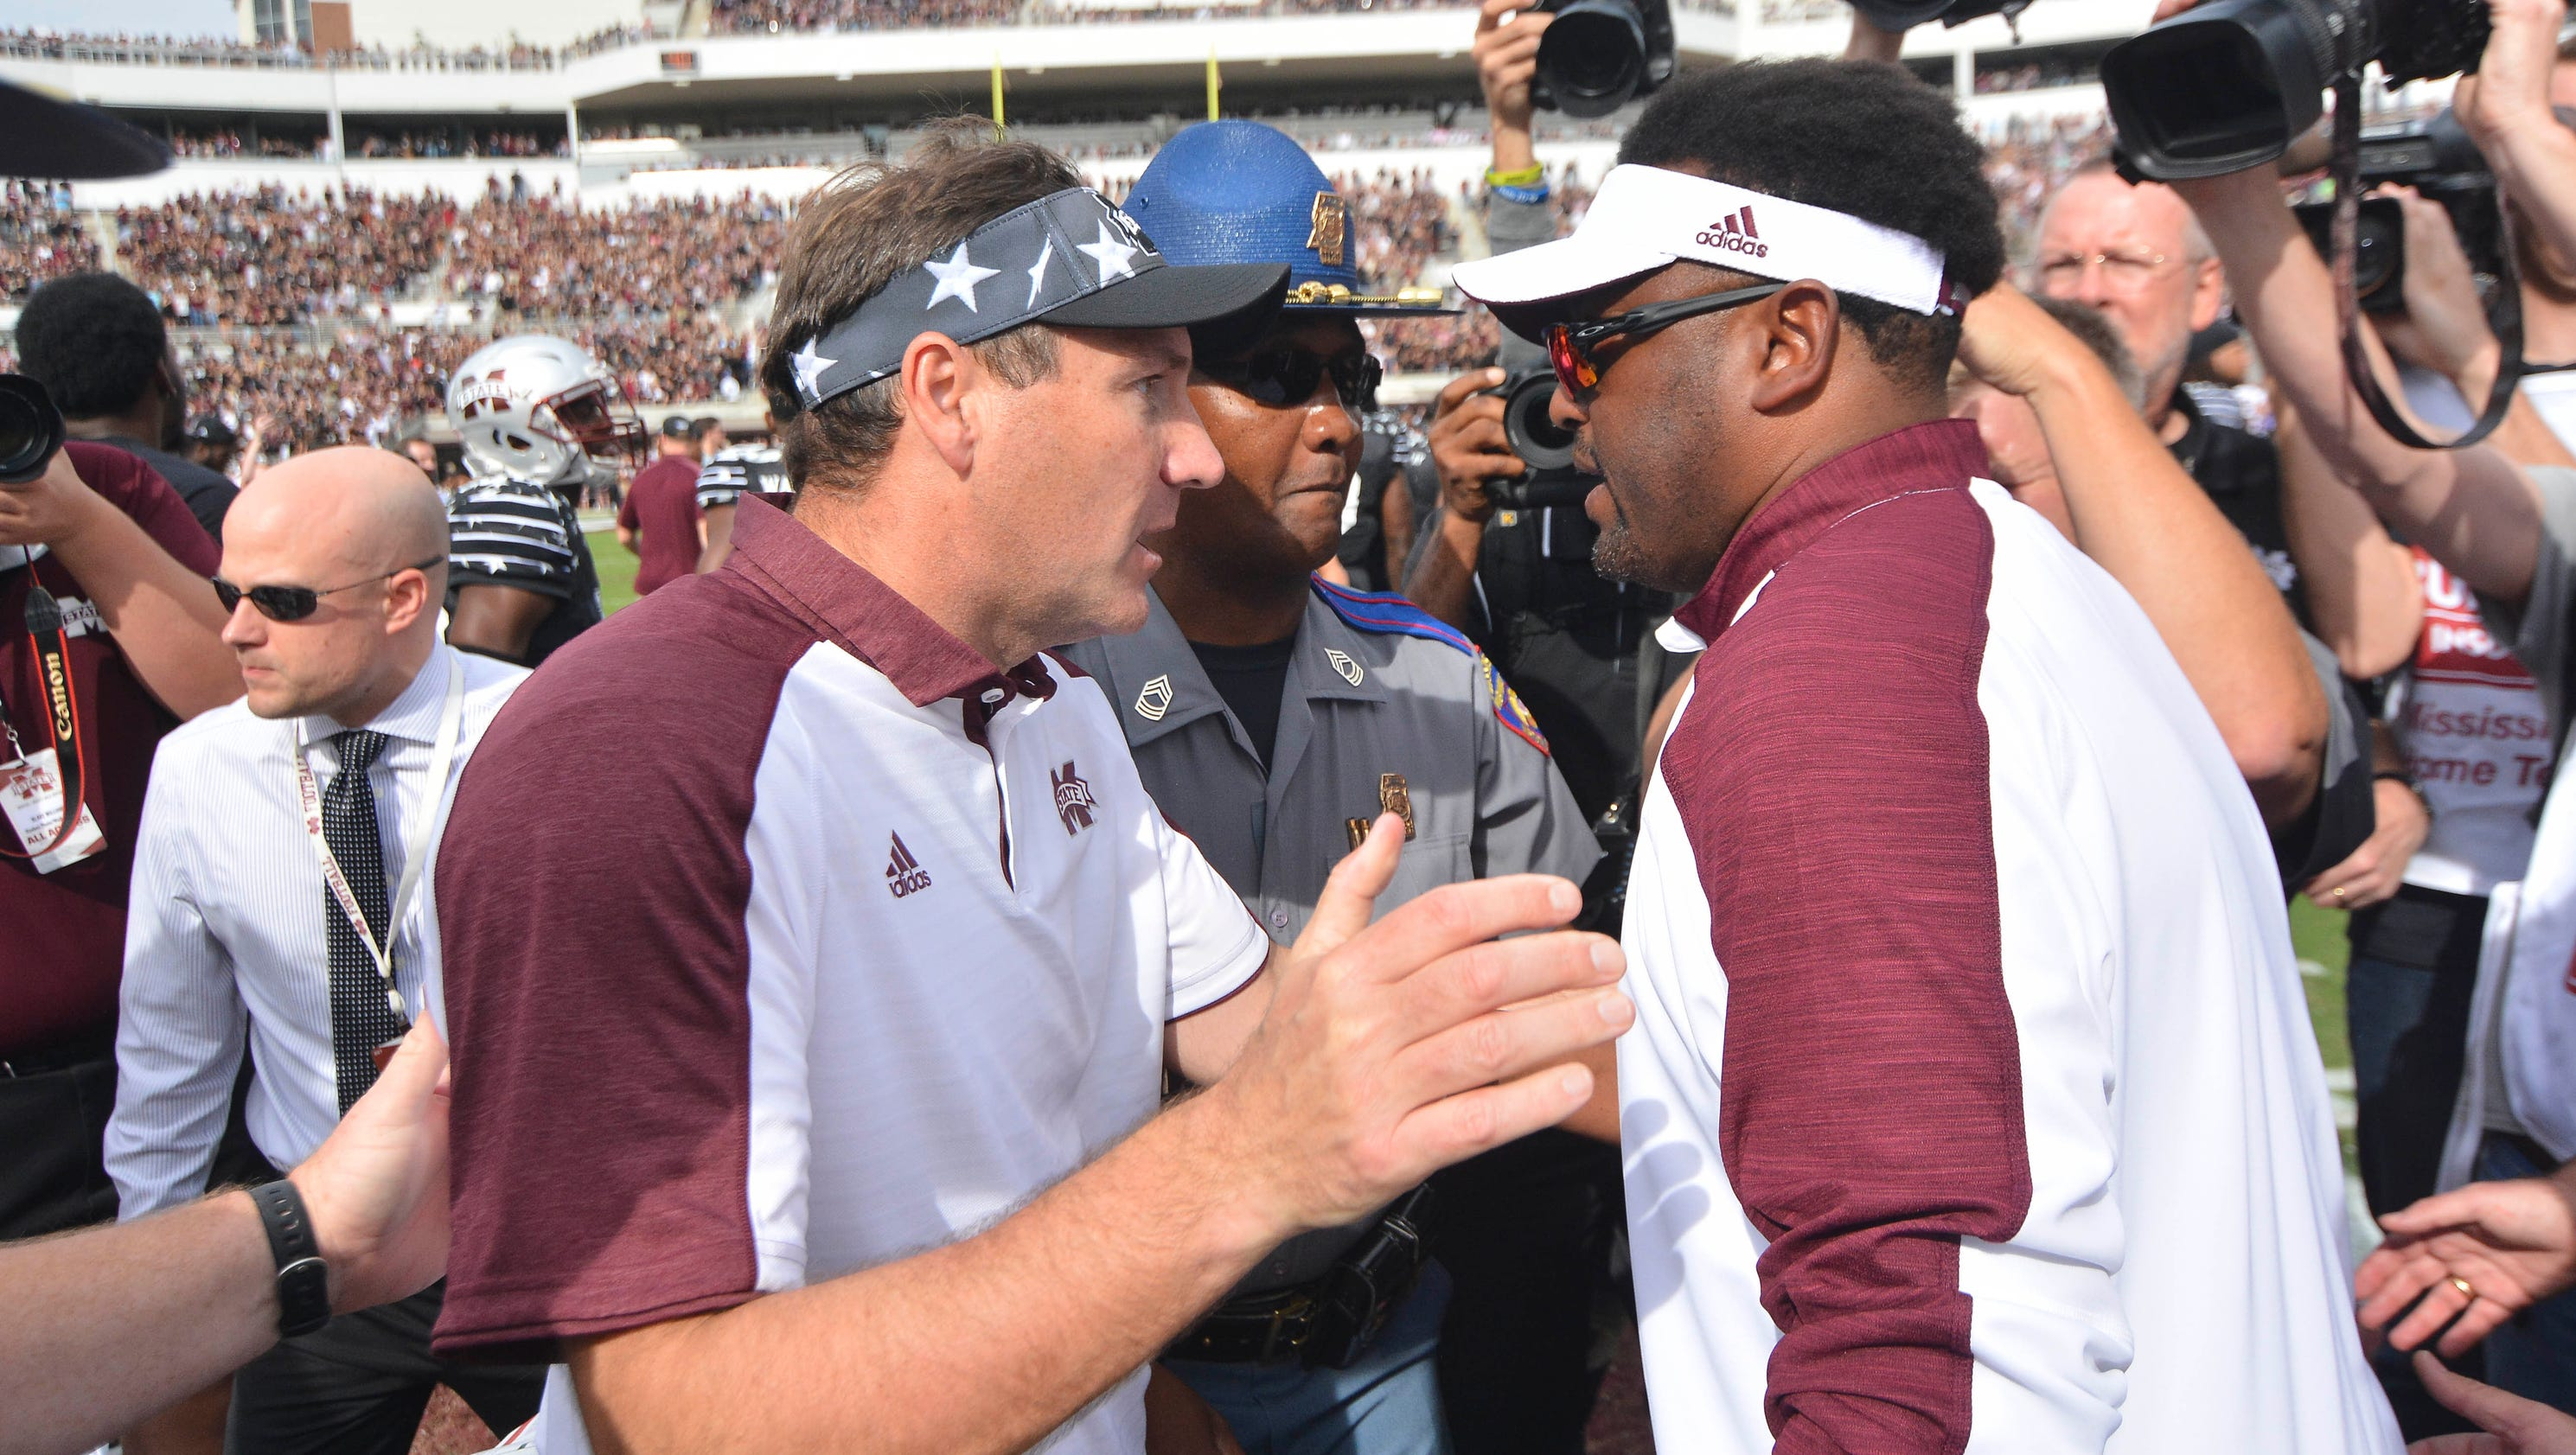 636139882350571119-usp-ncaa-football-texas-a-m-at-mississippi-state-86495726